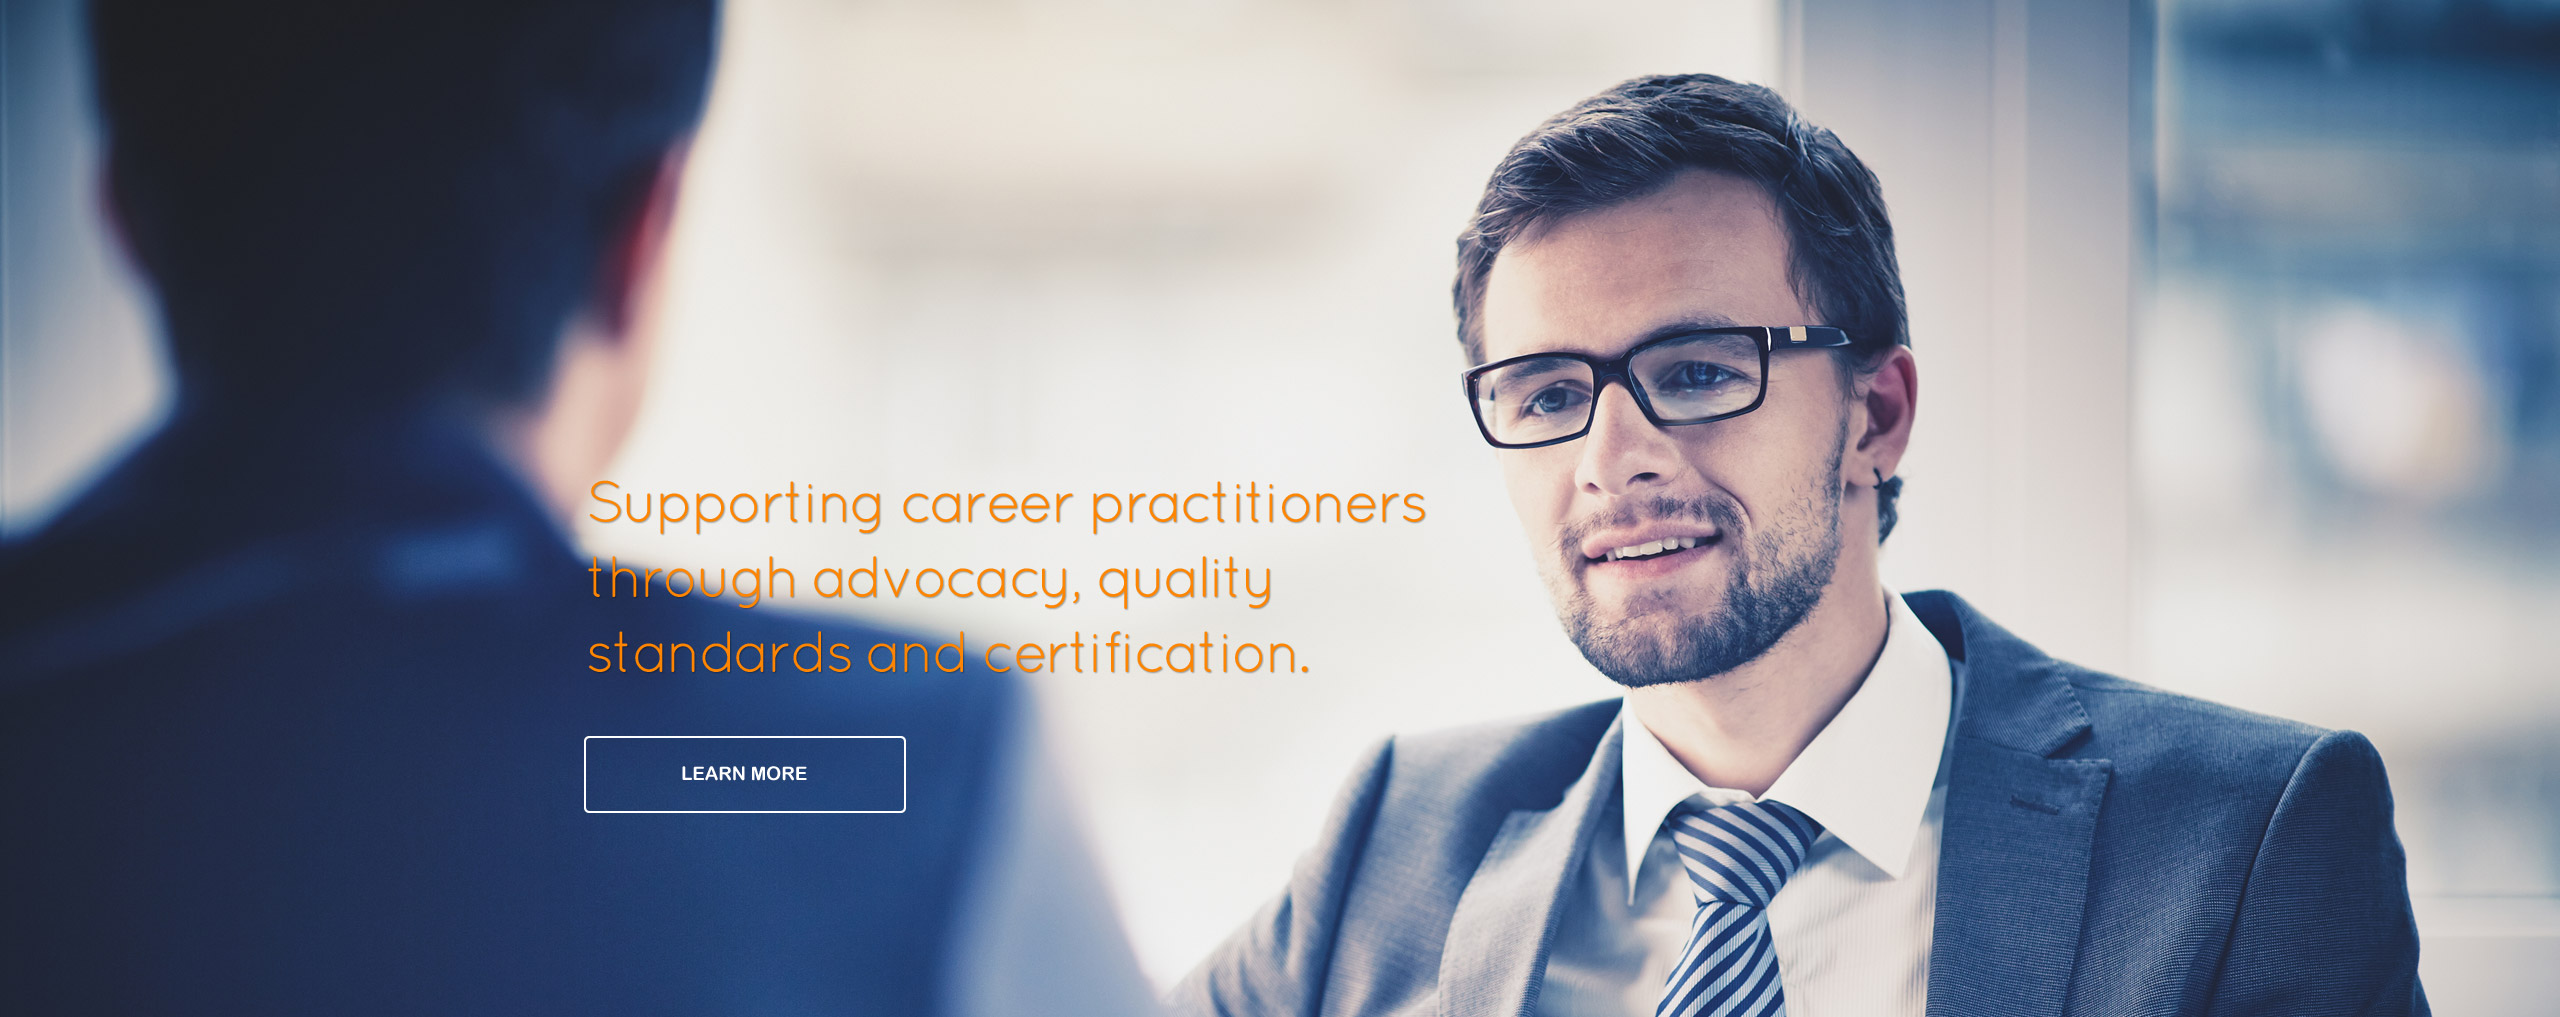 Career Practitioners Career Industry Council Of Australia Cica